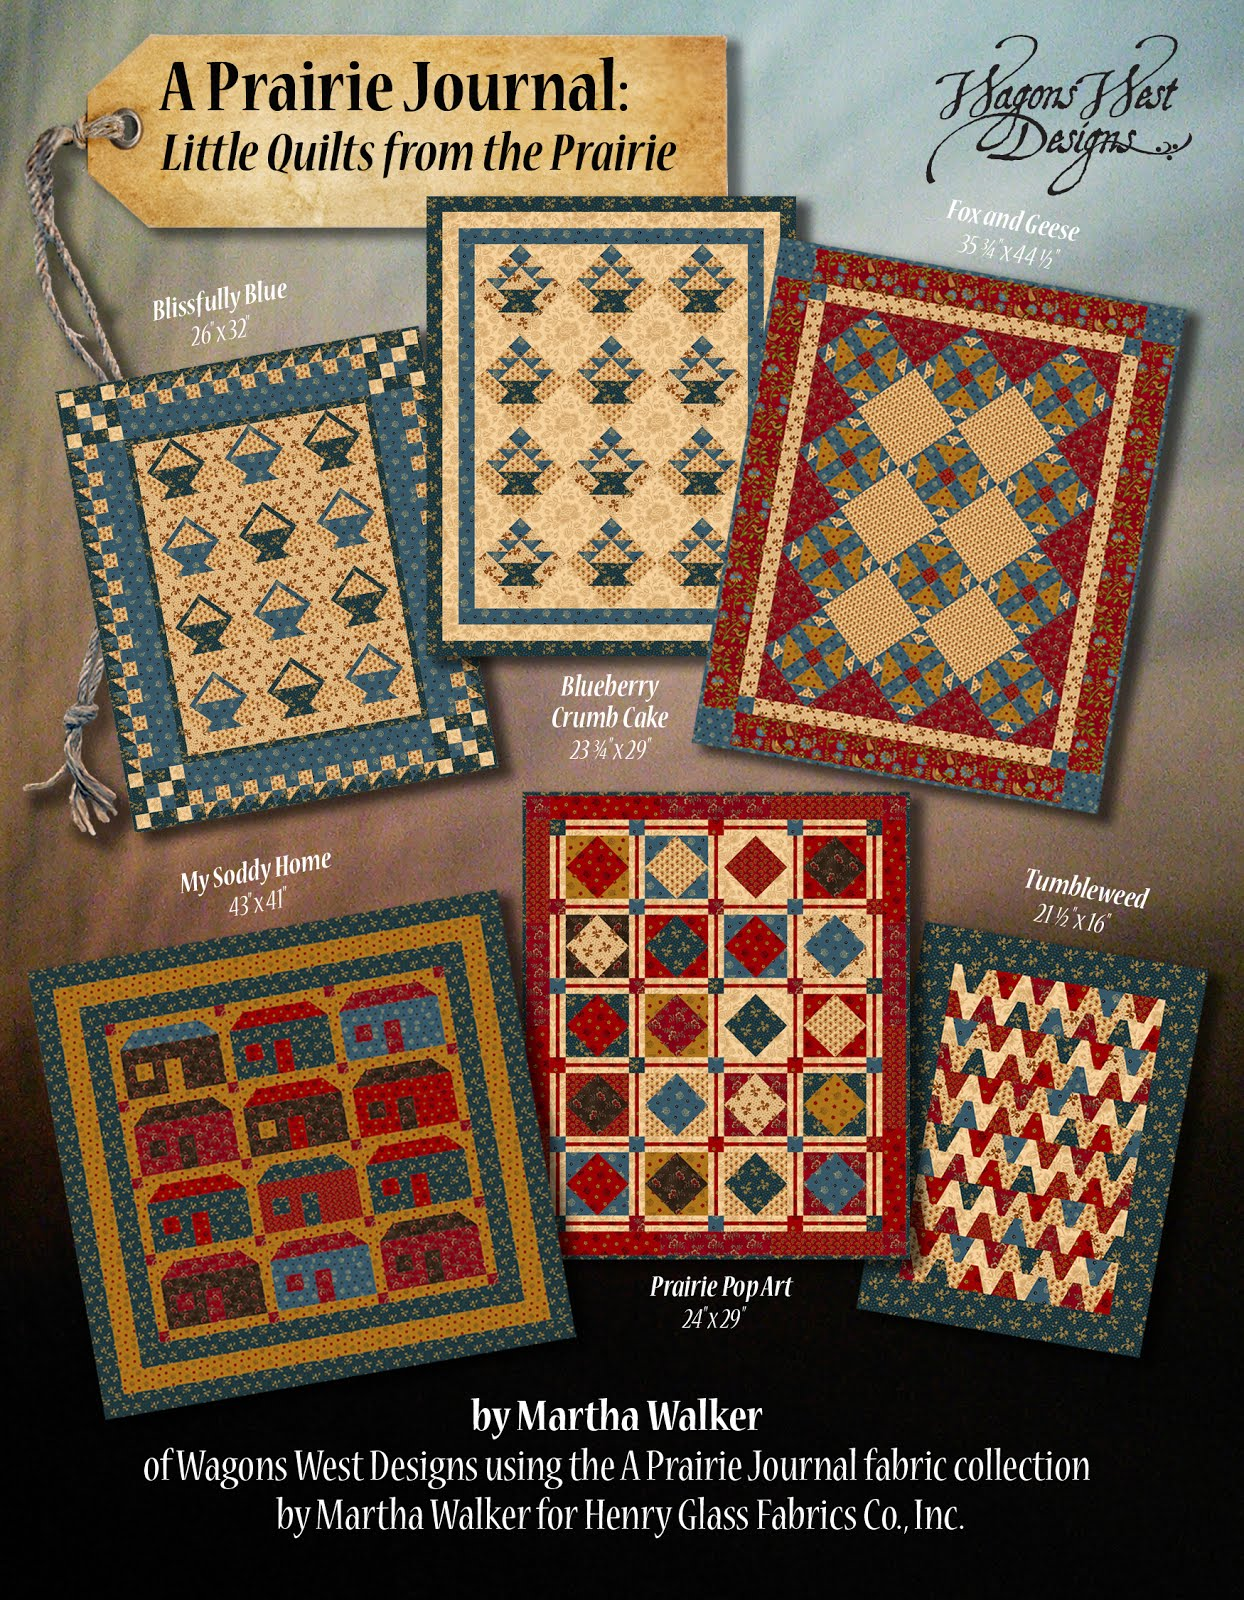 Little Quilts from the Prairie